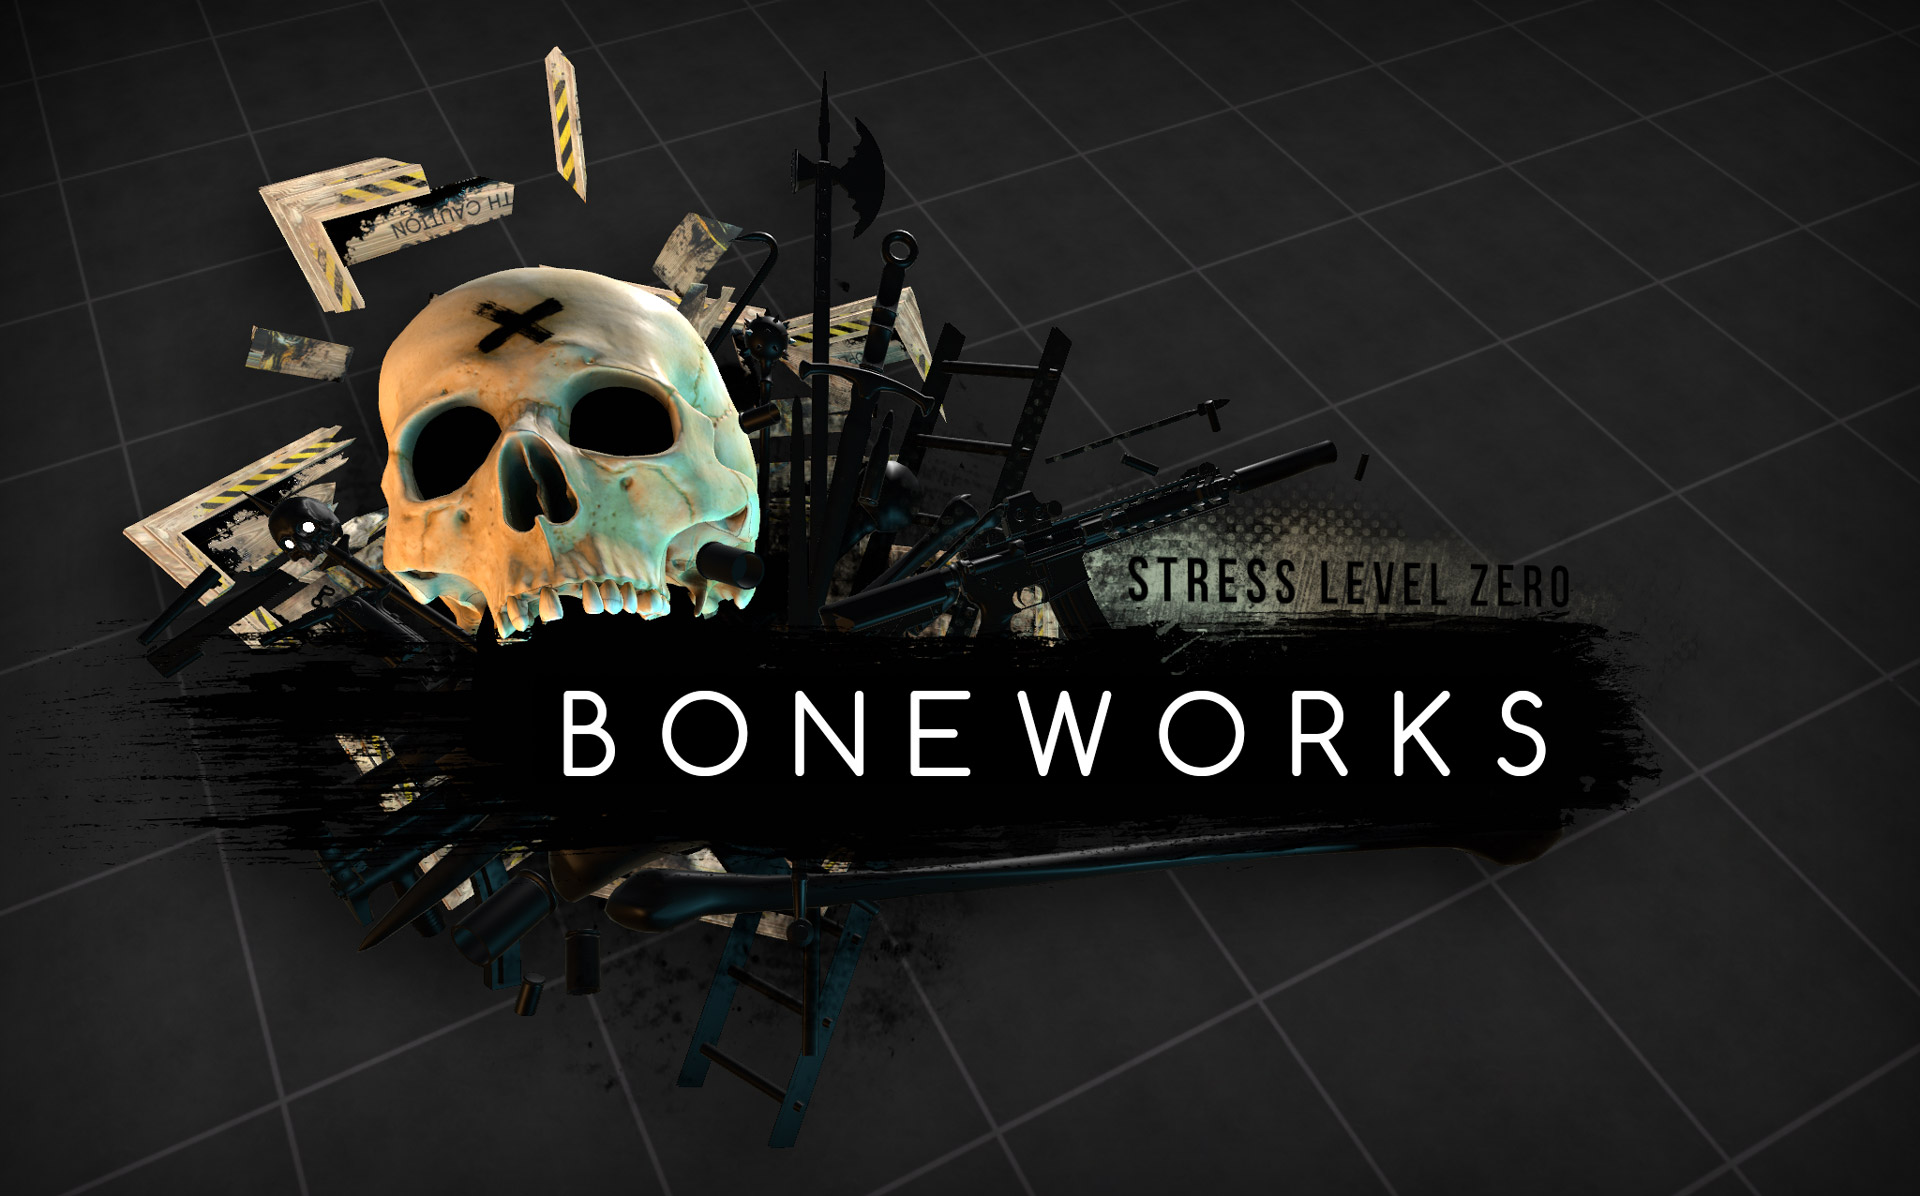 'Boneworks' Outpaces 'Beat Saber' to 100K Units, Earns $3 Million in First Week